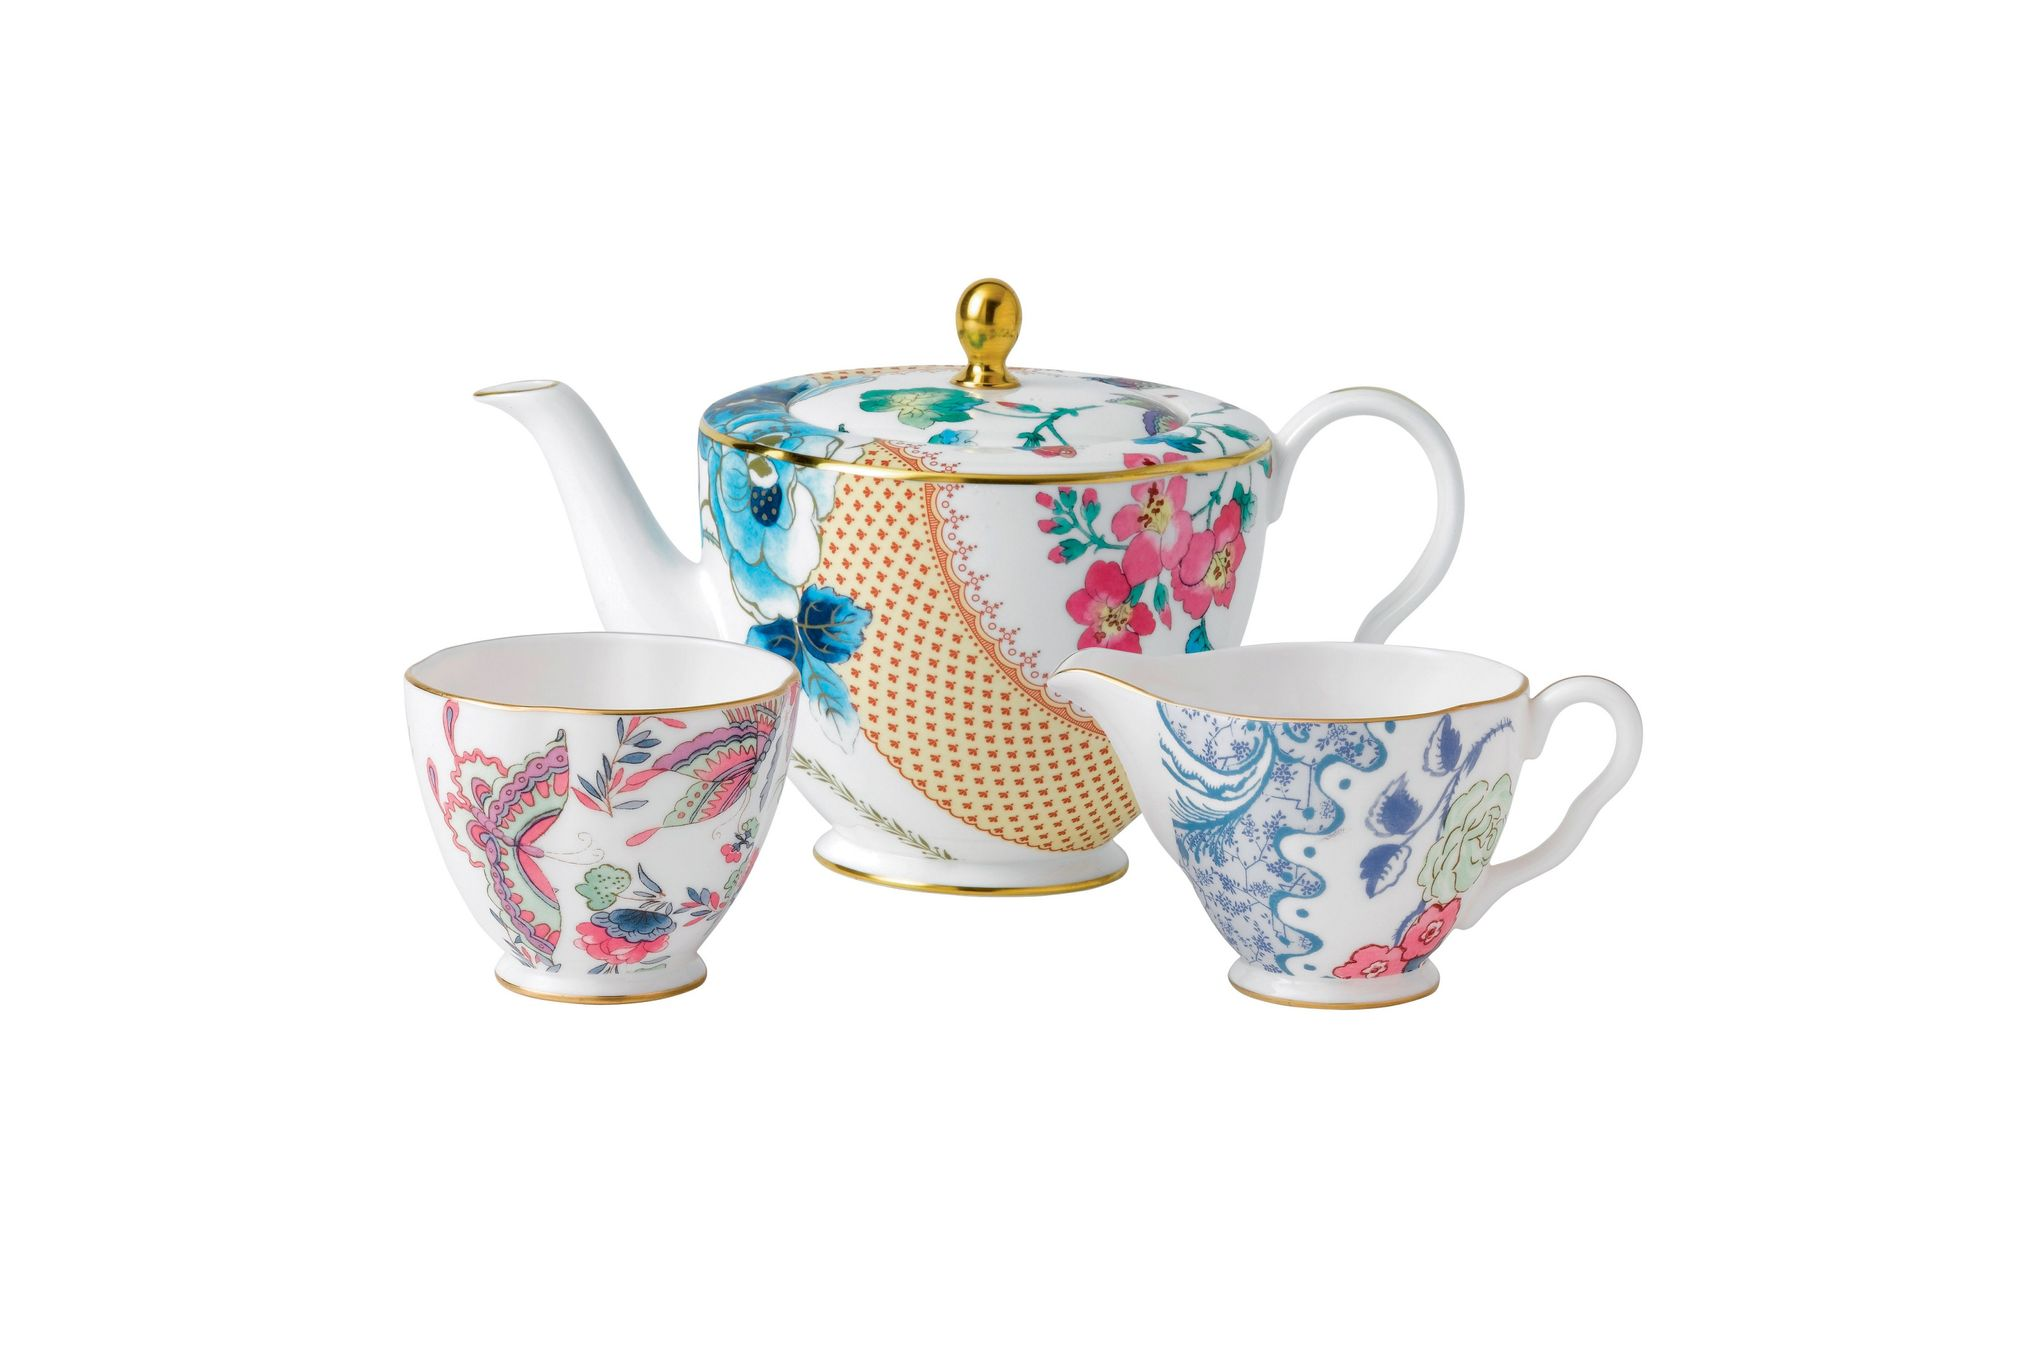 Wedgwood Butterfly Bloom Teapot, Sugar and Cream Set thumb 1